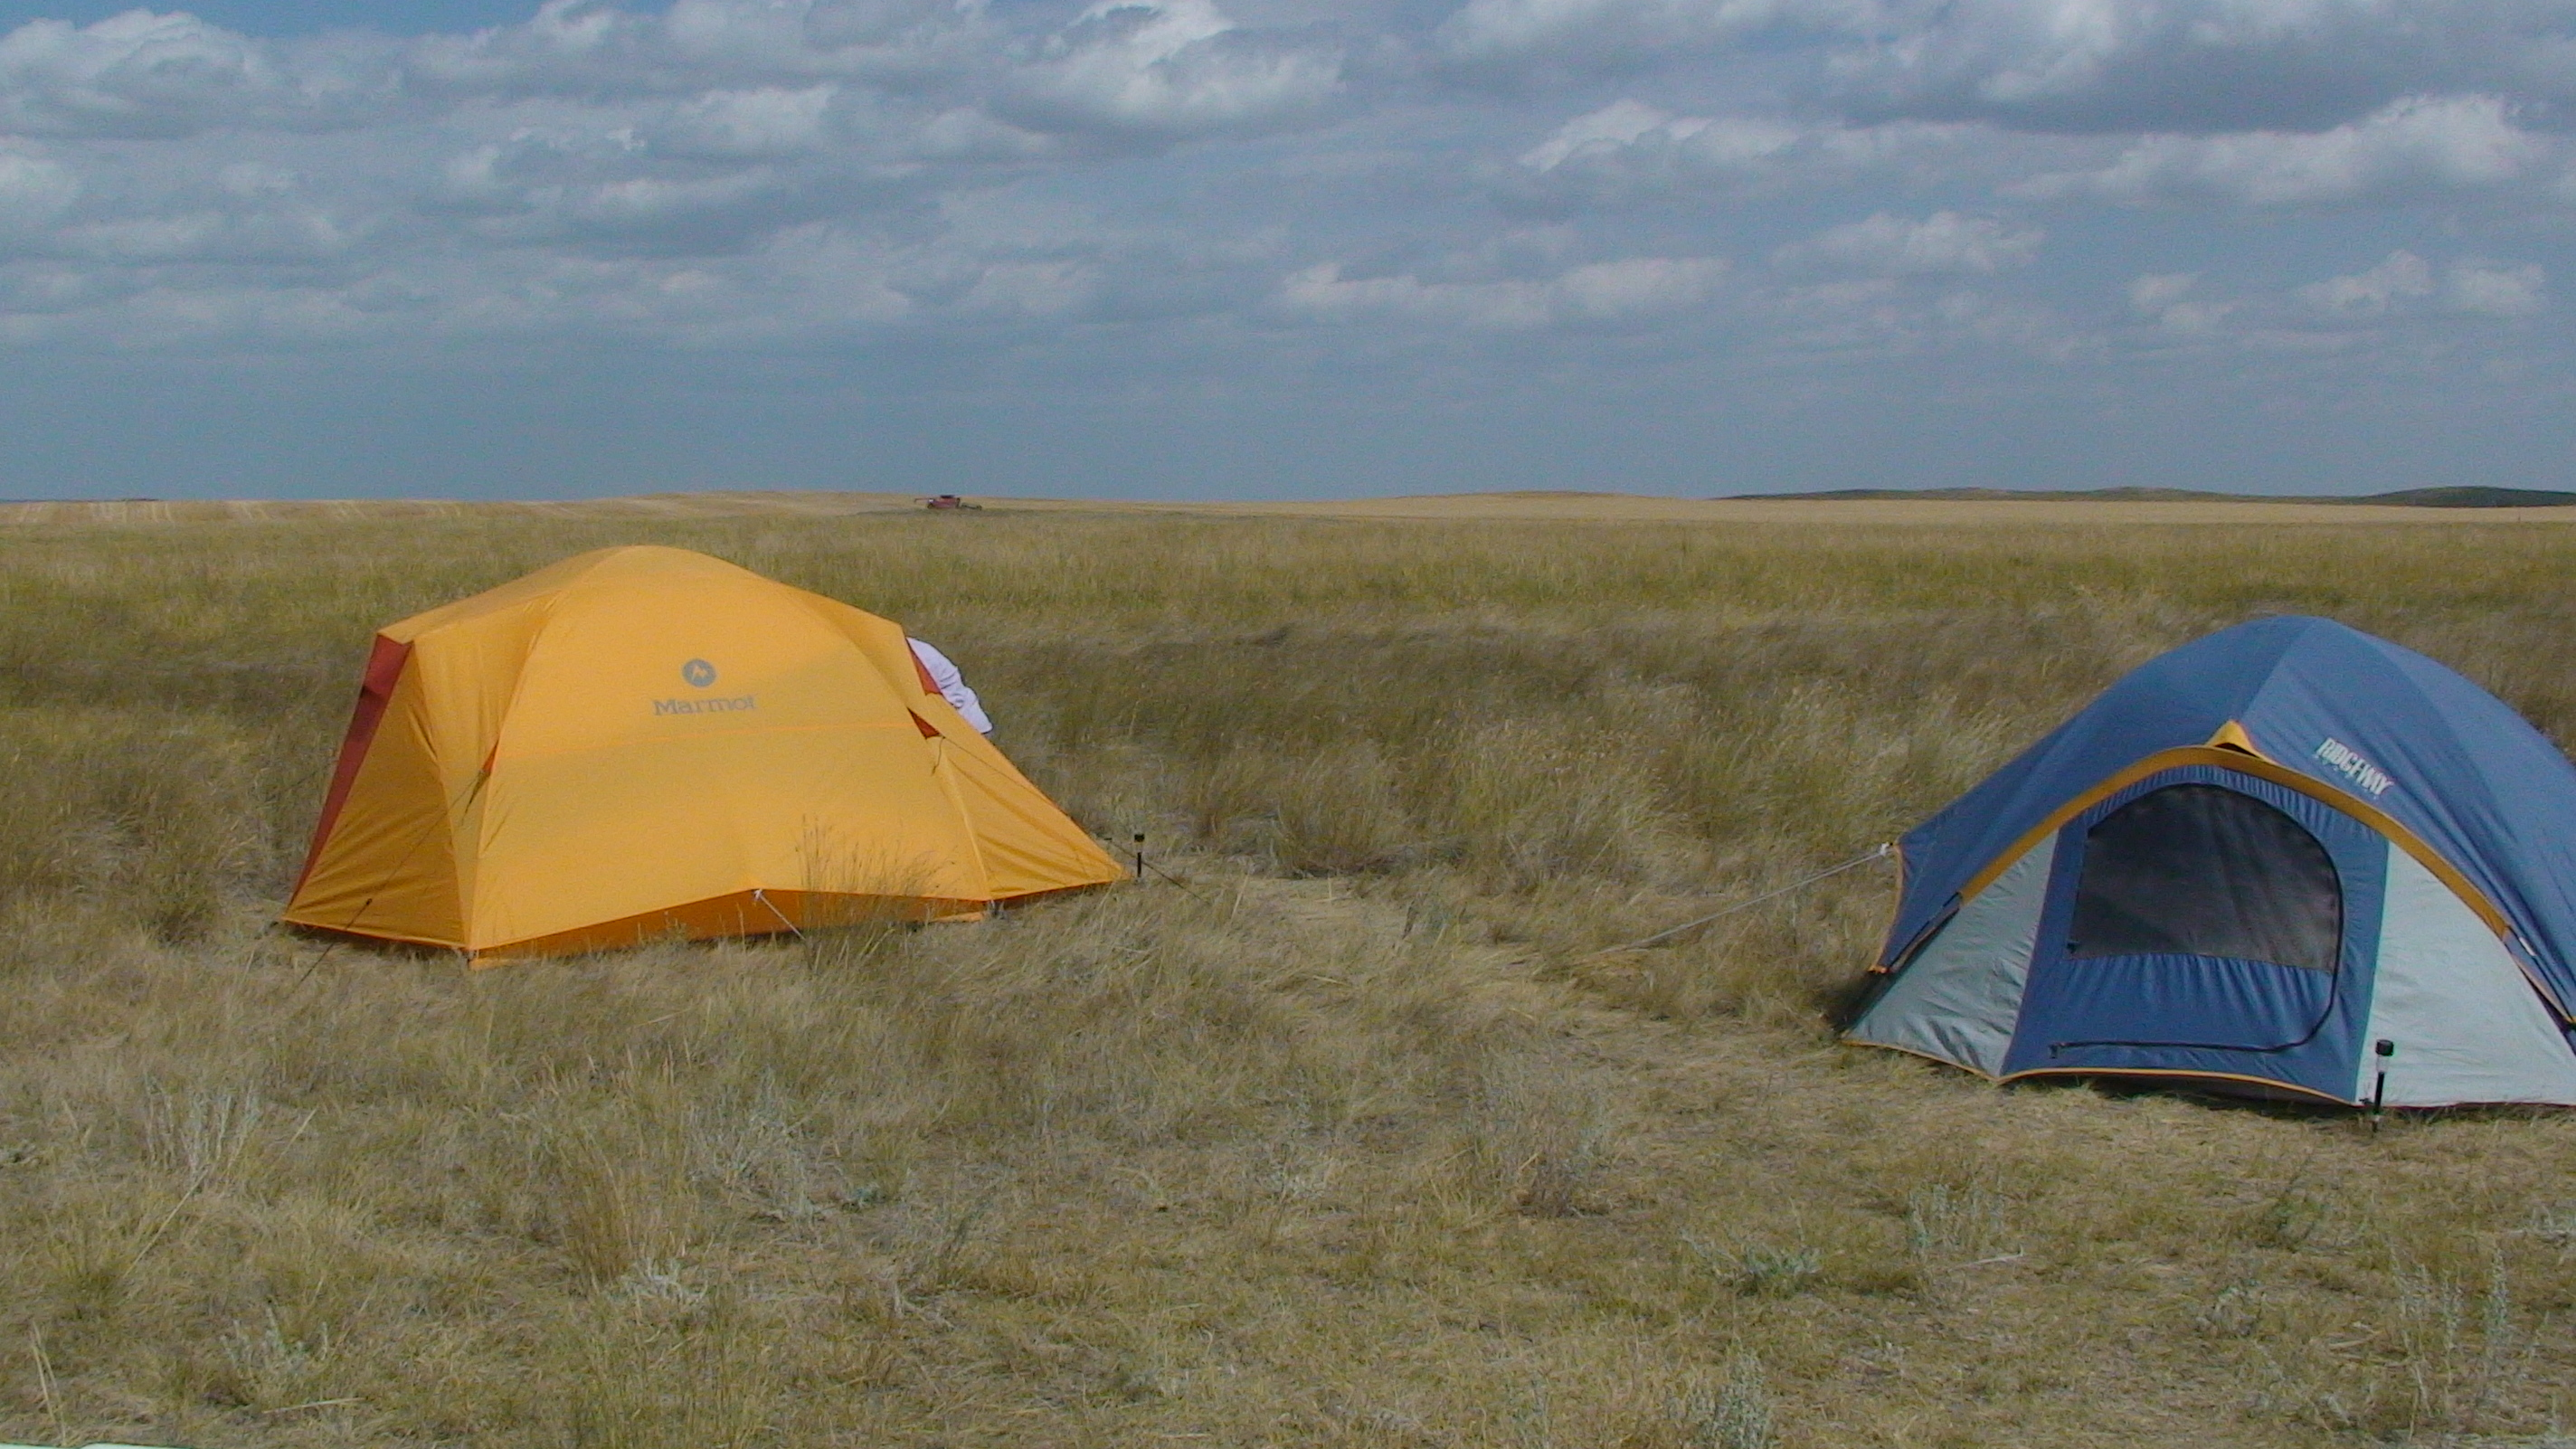 Camping on the coulee rim.